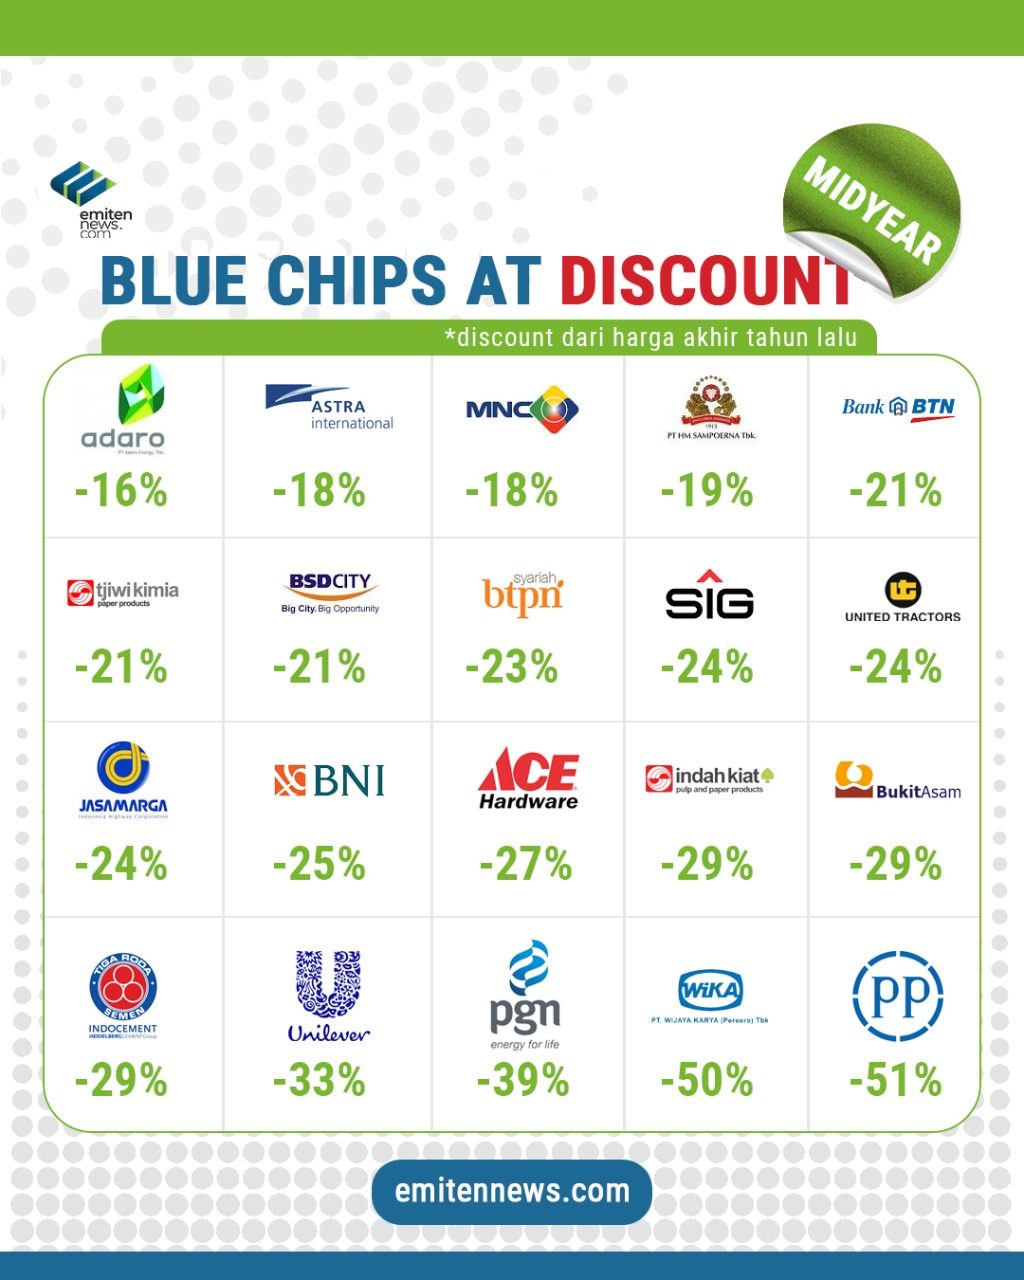 Blue Chips at Midyear Discount